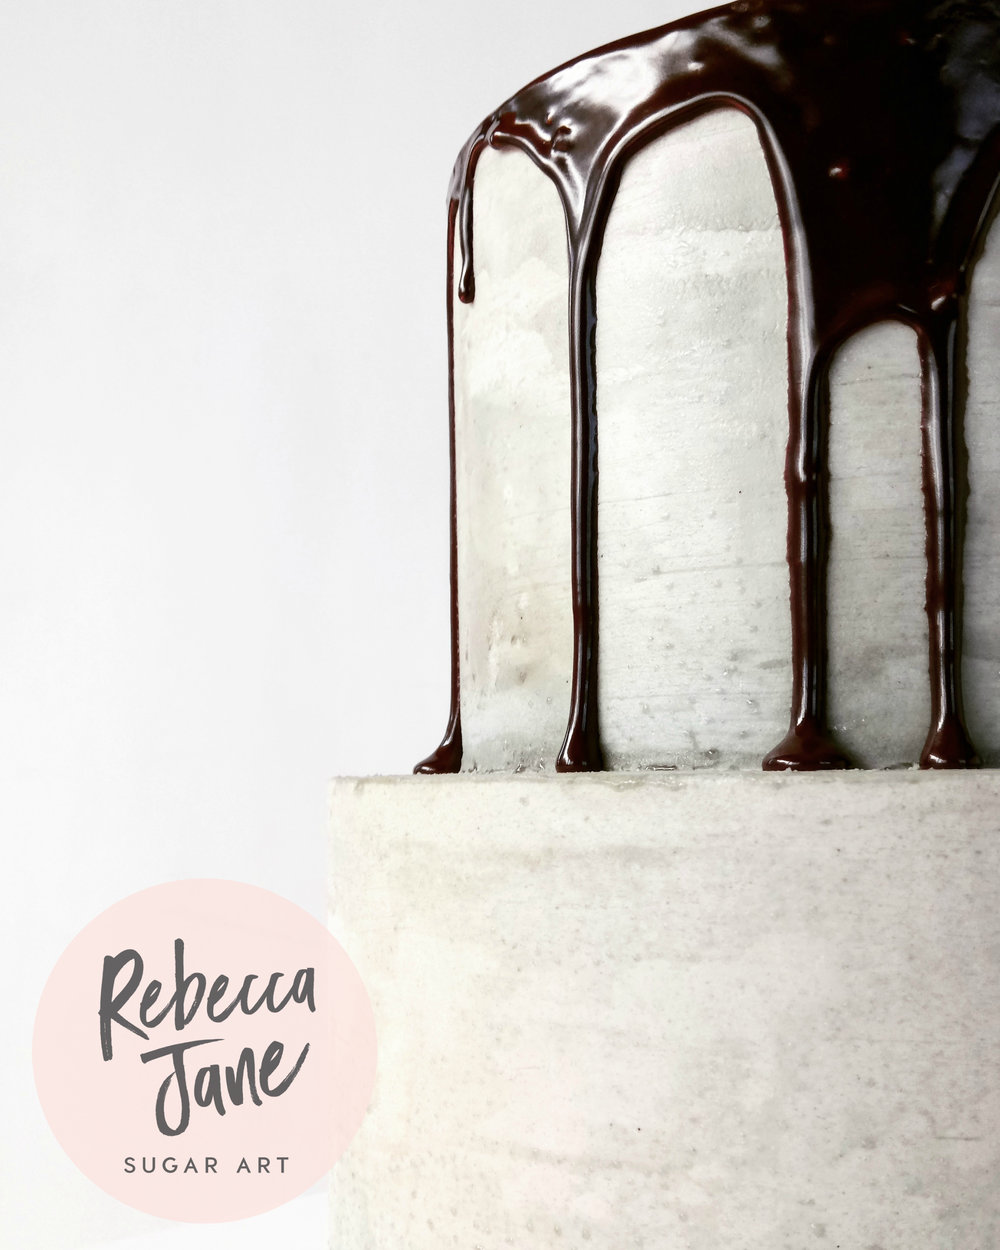 Rebecca Jane Sugar Art - Concrete buttercream drip cake